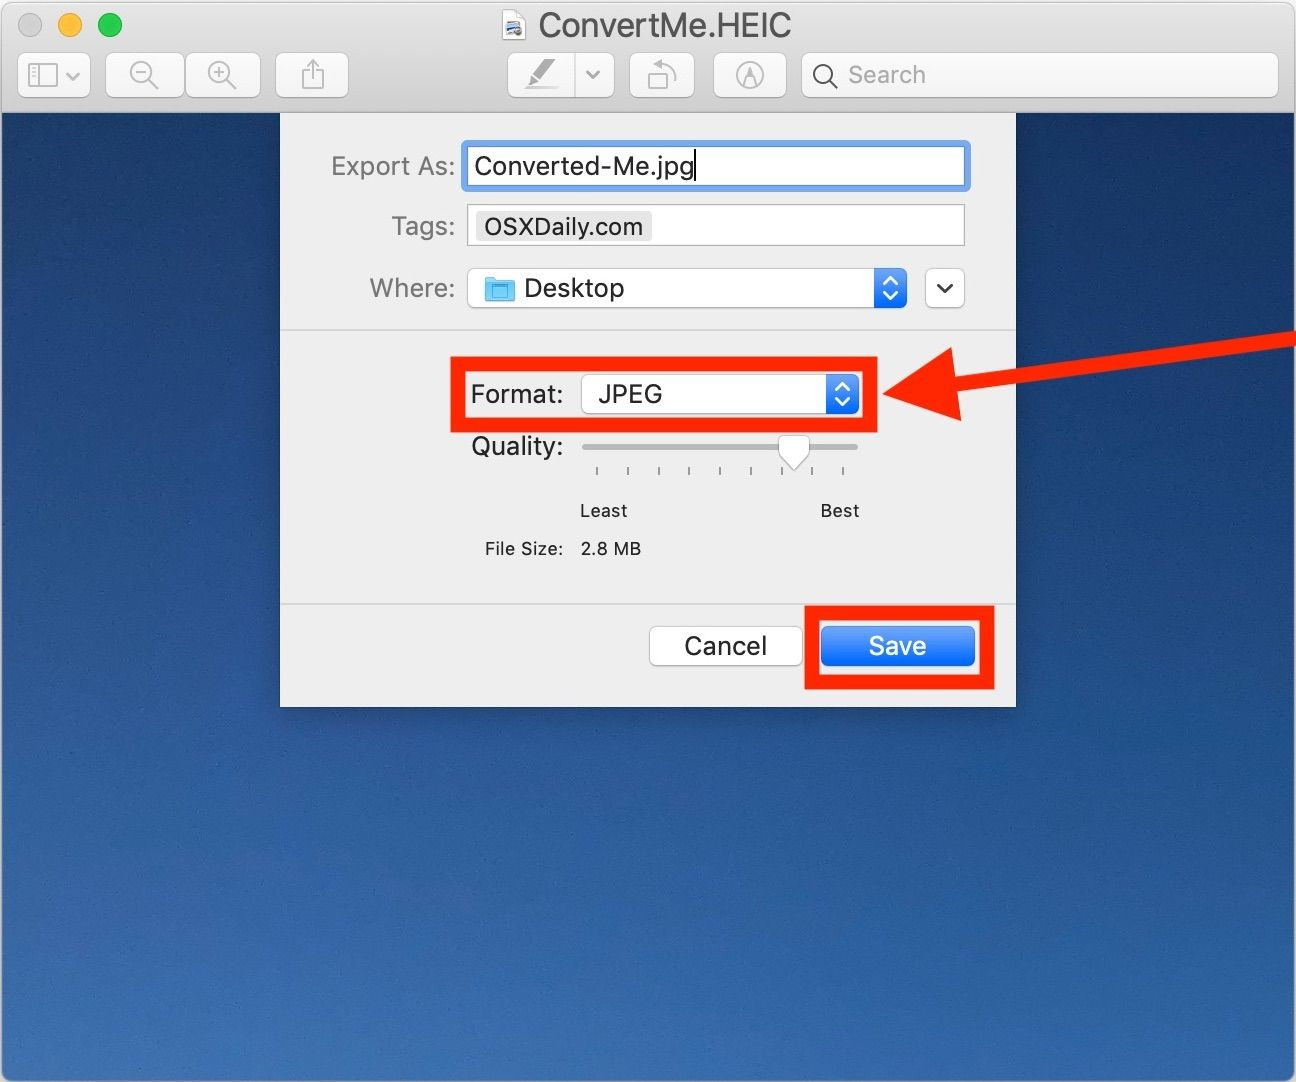 How To Convert Heic To Jpg On Mac Easily With Preview Converter Mac Iphone Pictures